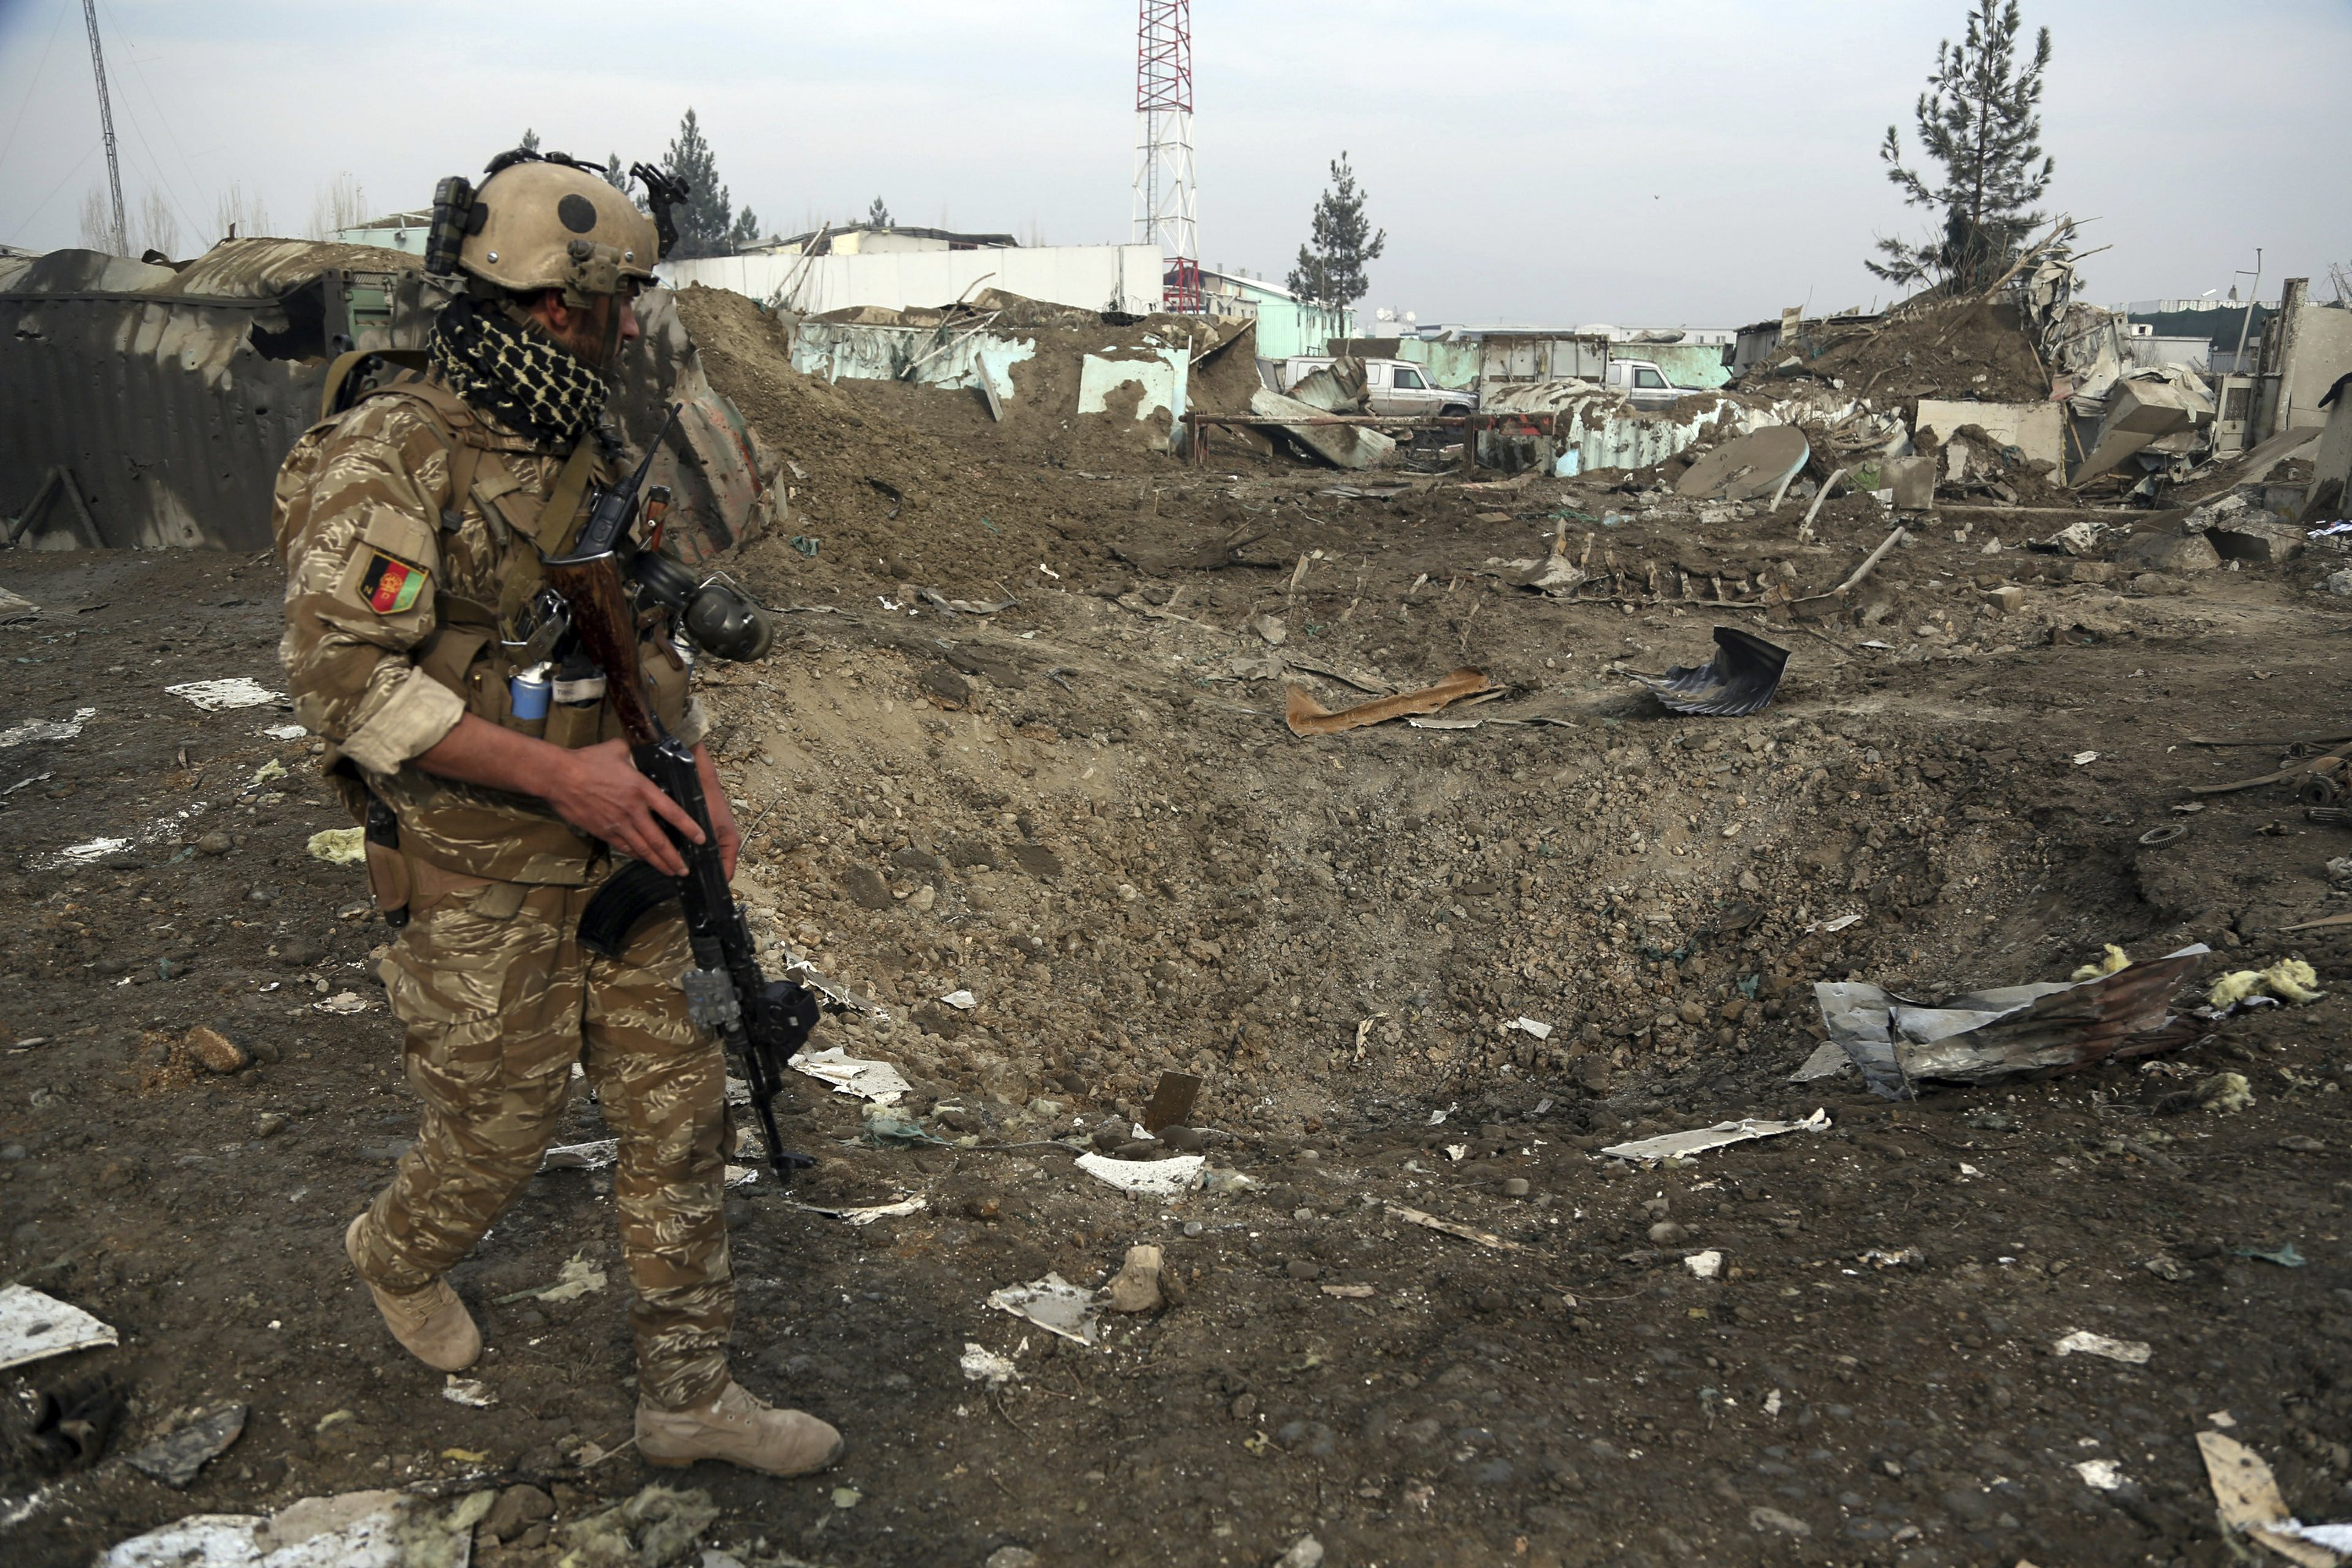 Report: Afghan forces still shrinking, security gaps growing